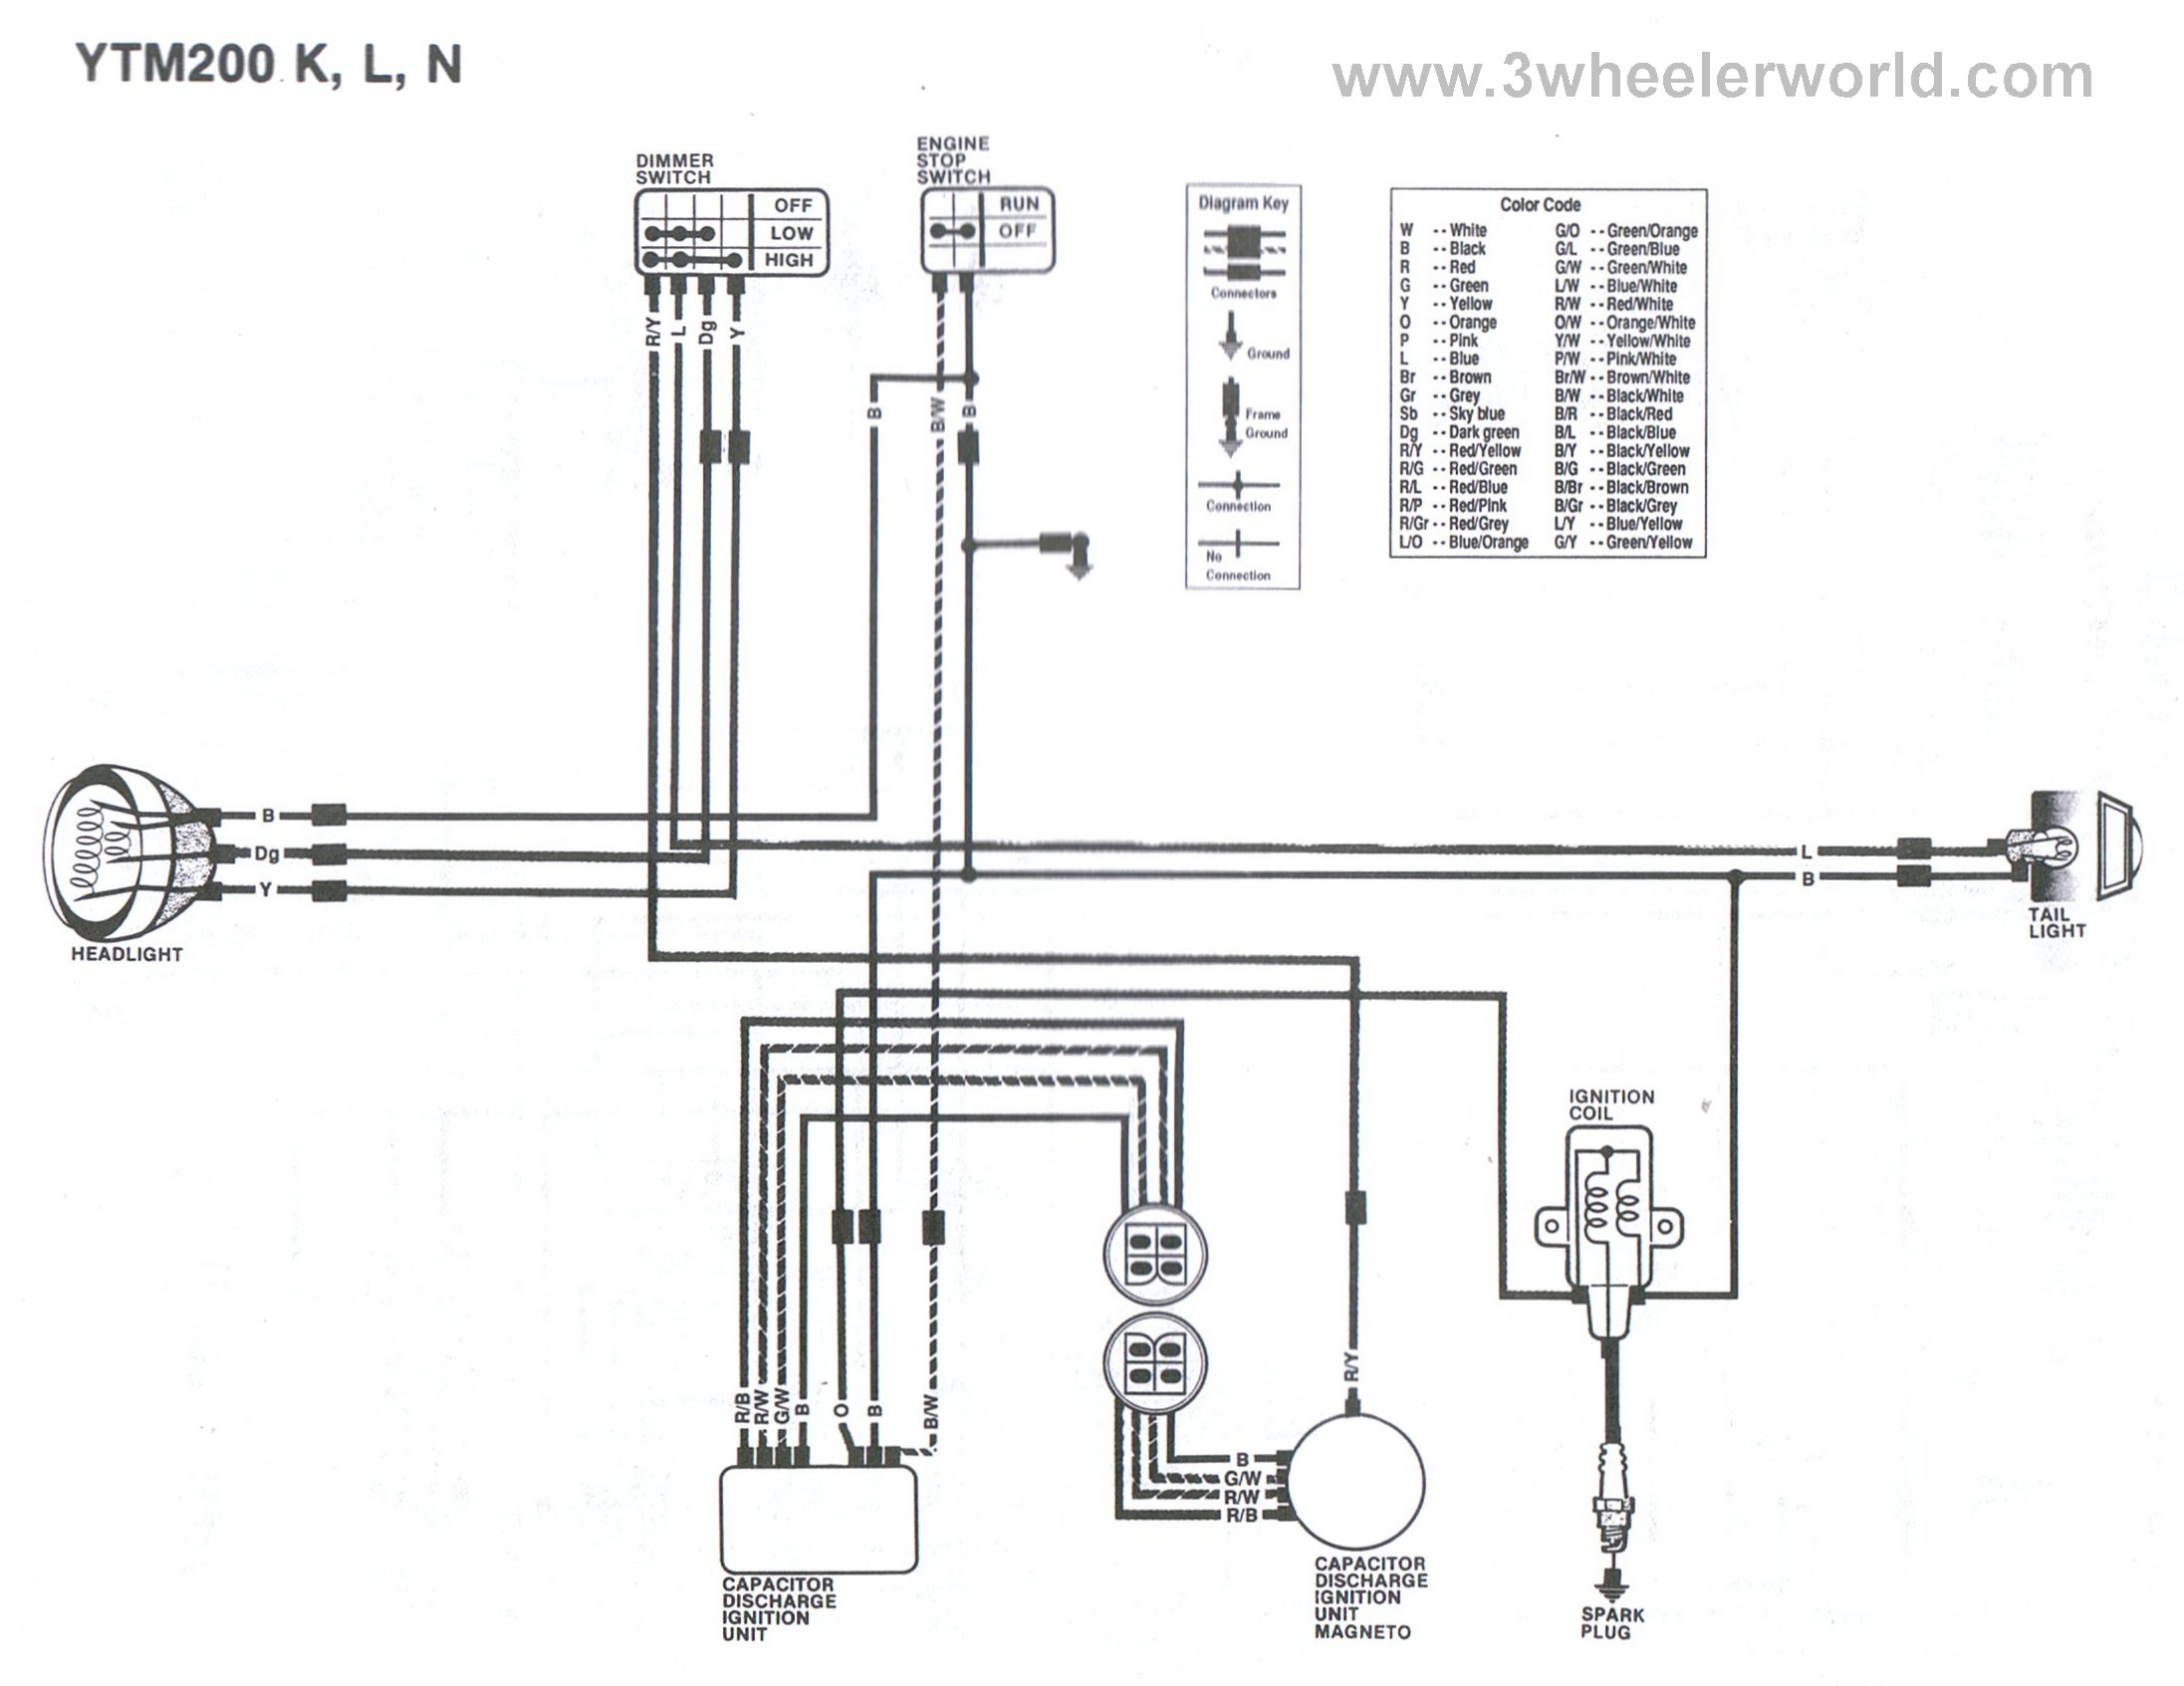 YTM200KLN 3 wheeler world tech help yamaha wiring diagrams  at bakdesigns.co